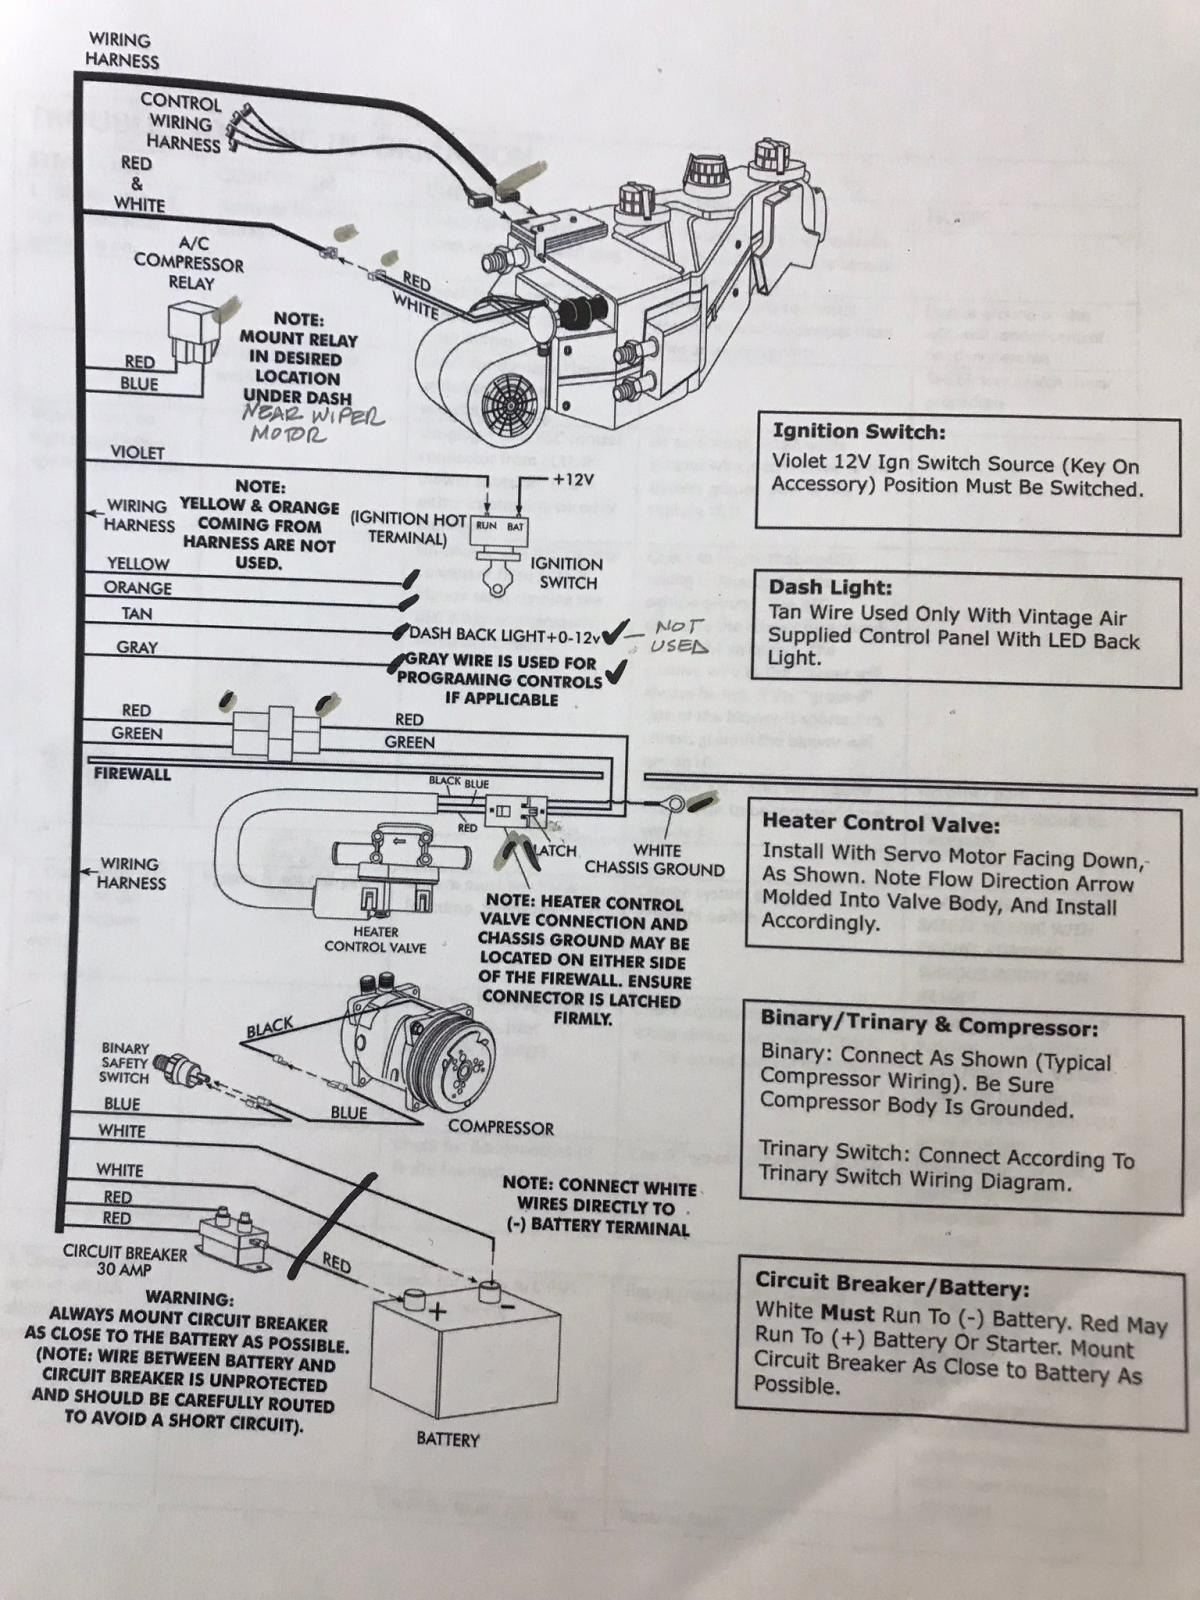 Vanagon View Topic Small Car Performance Diy Binary Switch Wiring Diagram Image May Have Been Reduced In Size Click To Fullscreen